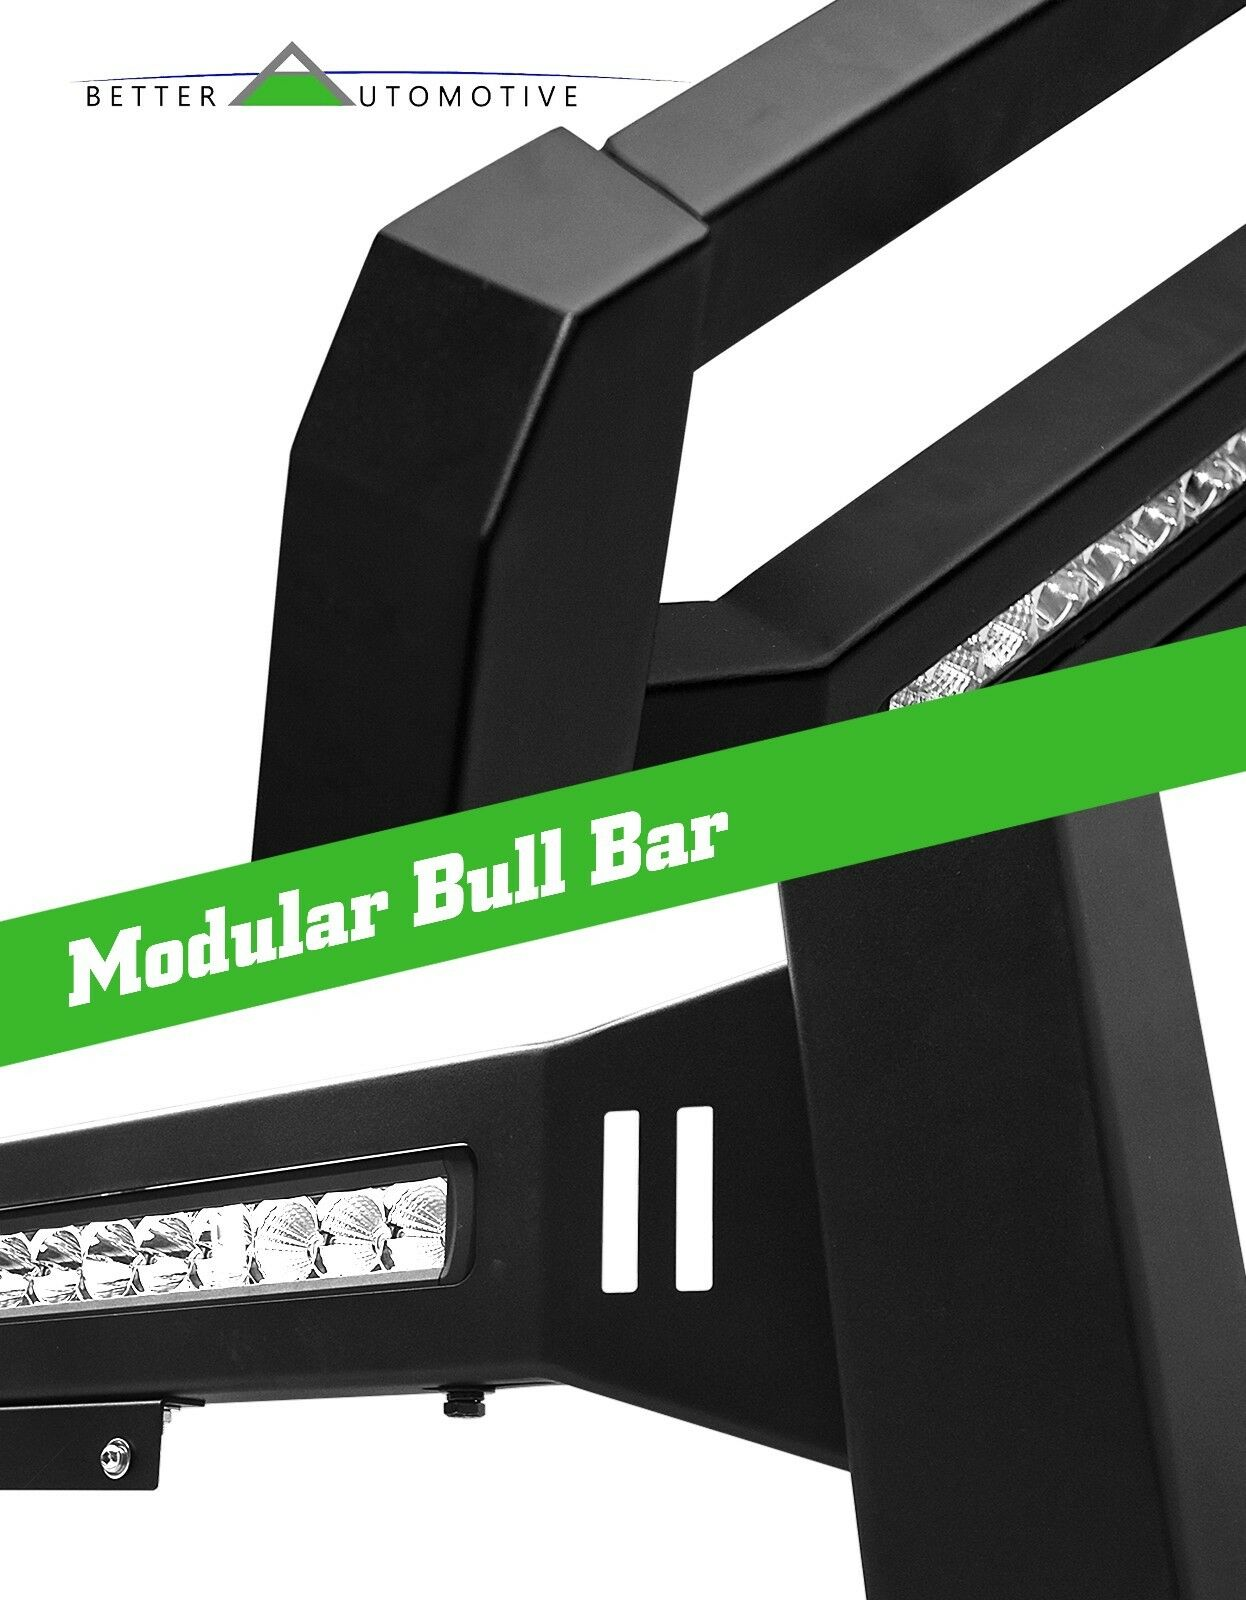 LED Light Modular Bull Bar for 2015-2020 Chevy Colorado ...